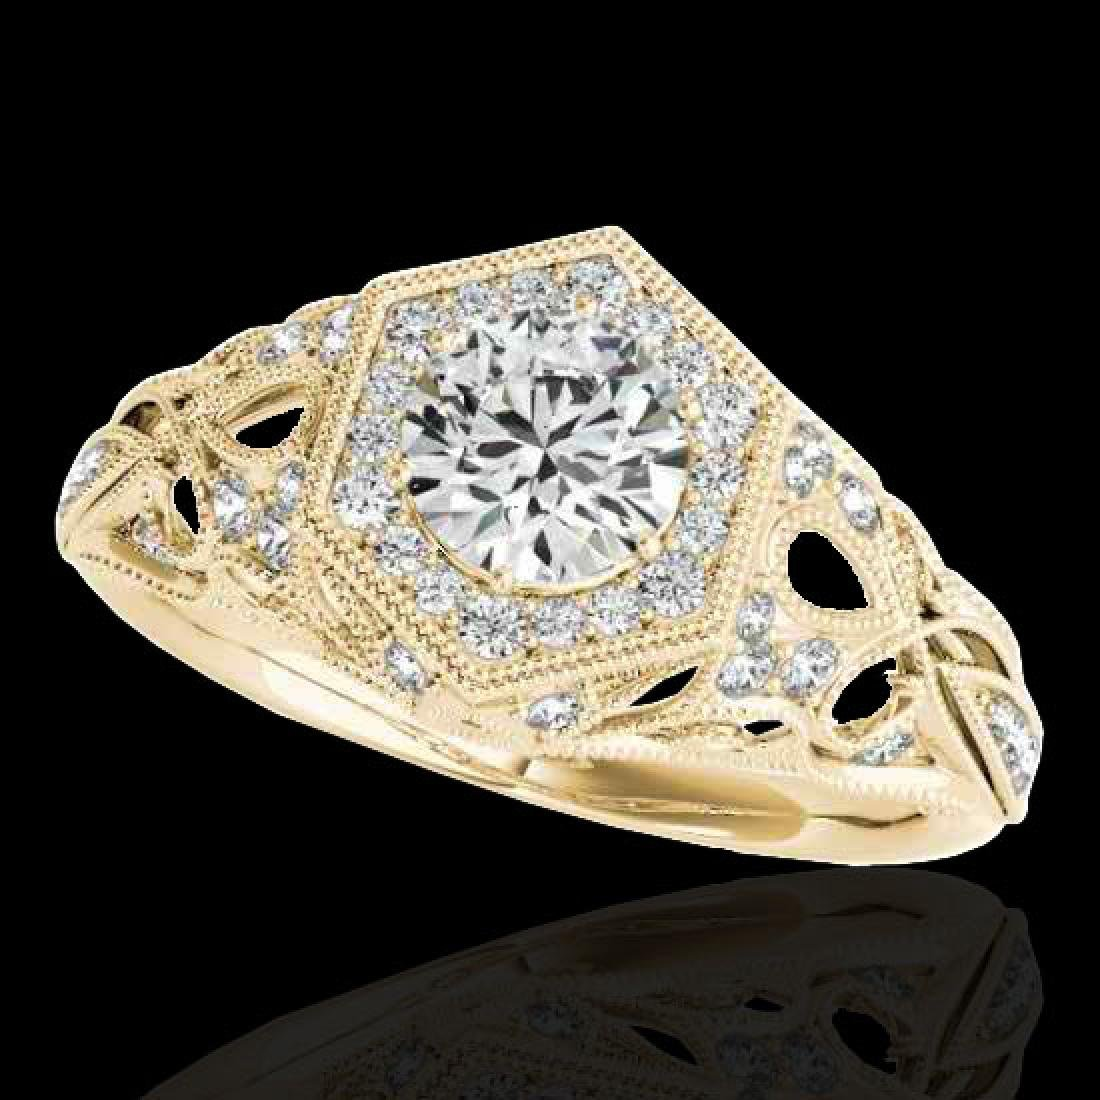 1.4 CTW H-SI/I Certified Diamond Solitaire Antique Ring